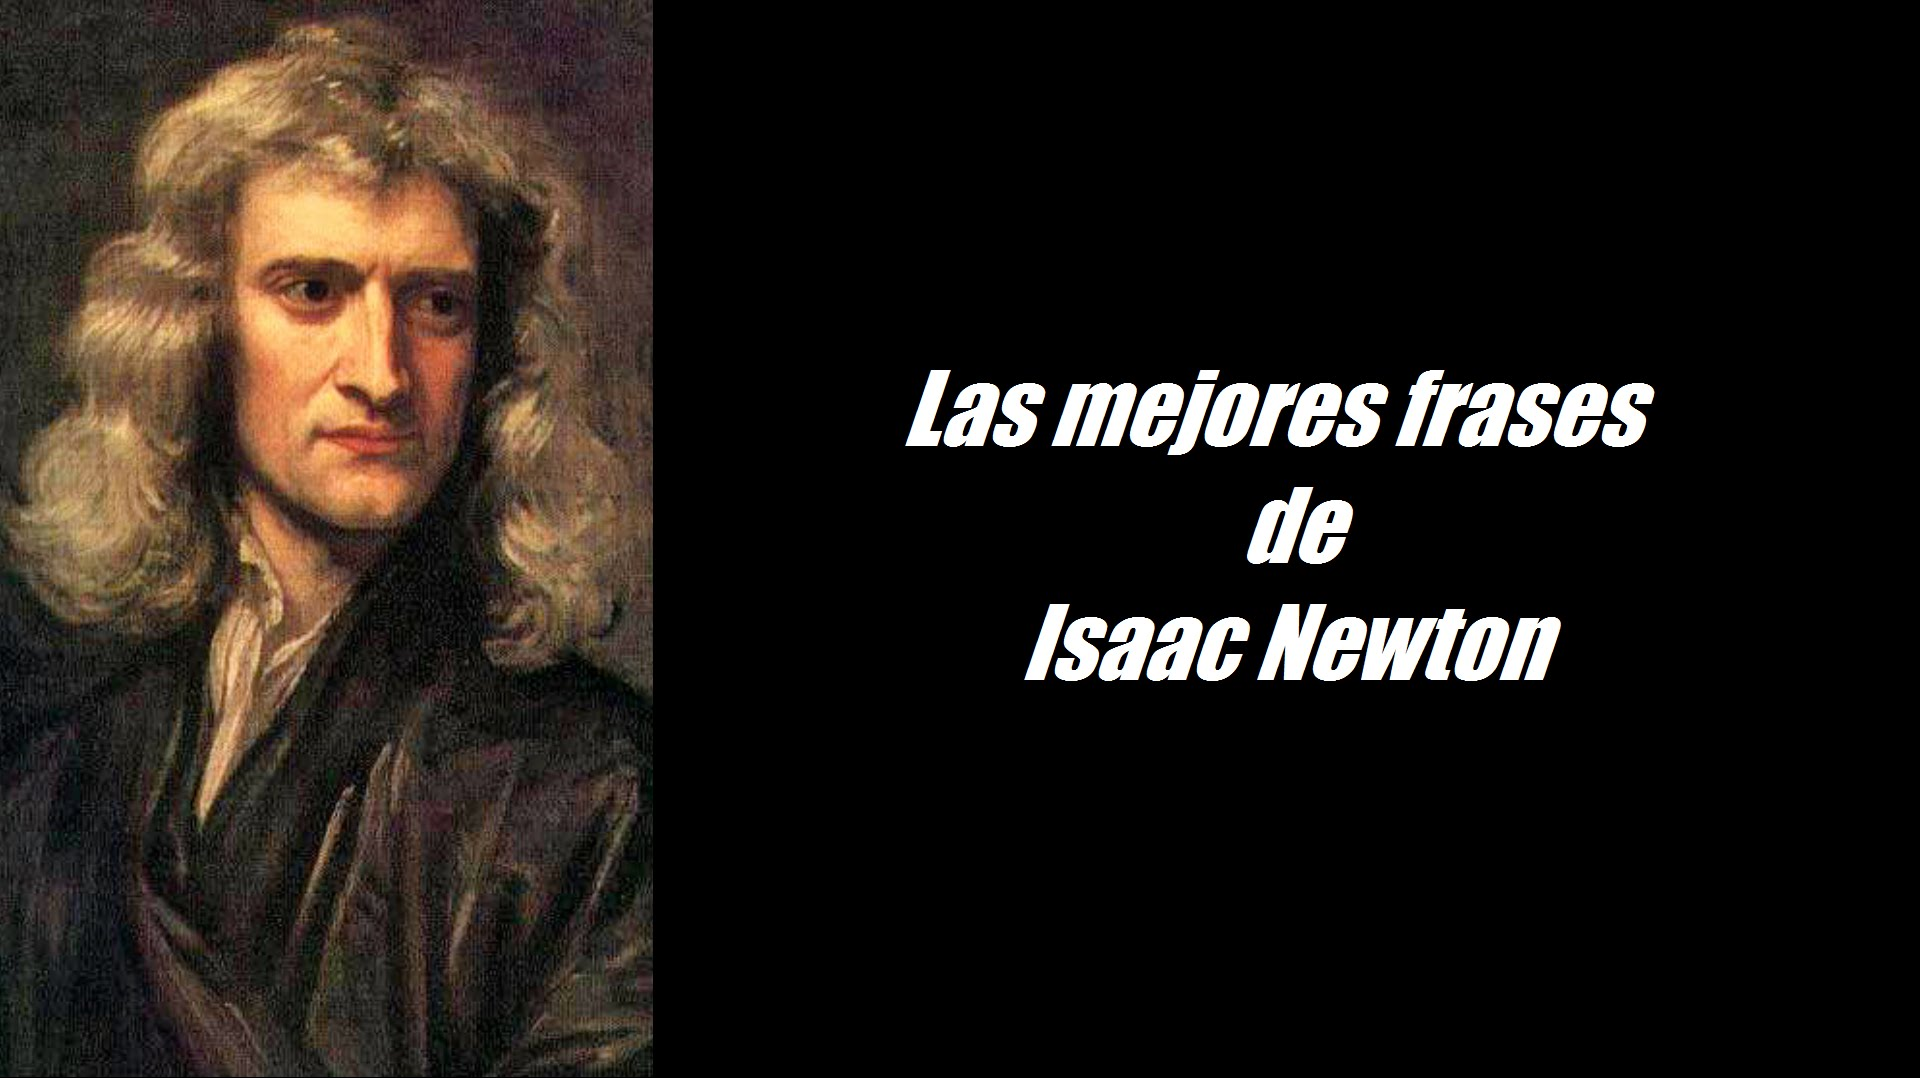 Frases Celebres William Shakespeare Frases De Newton 31 Frases